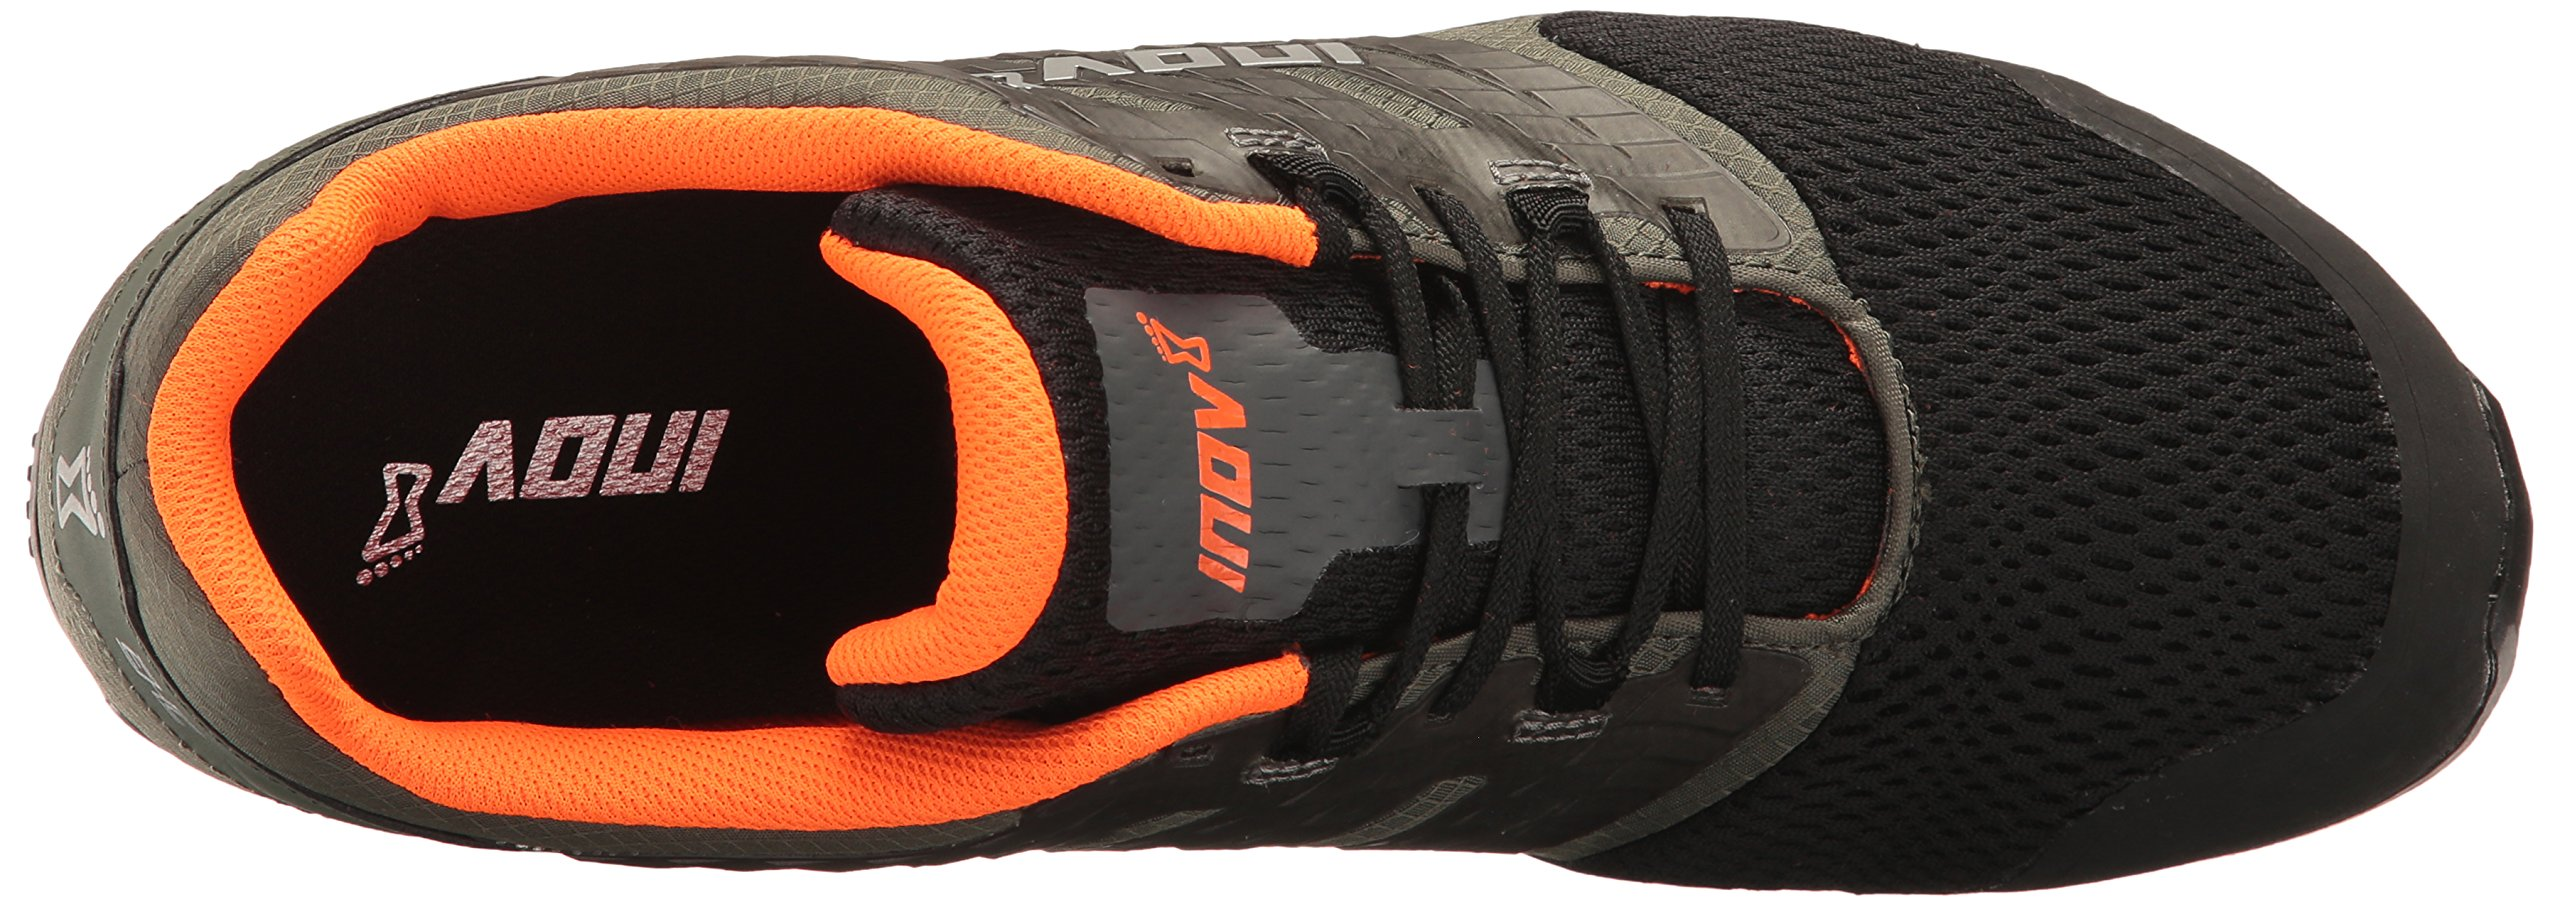 Inov-8 Men's Bare-XF 210 v2 (M) Cross Trainer Grey/Black/Orange 11 D US by Inov-8 (Image #8)